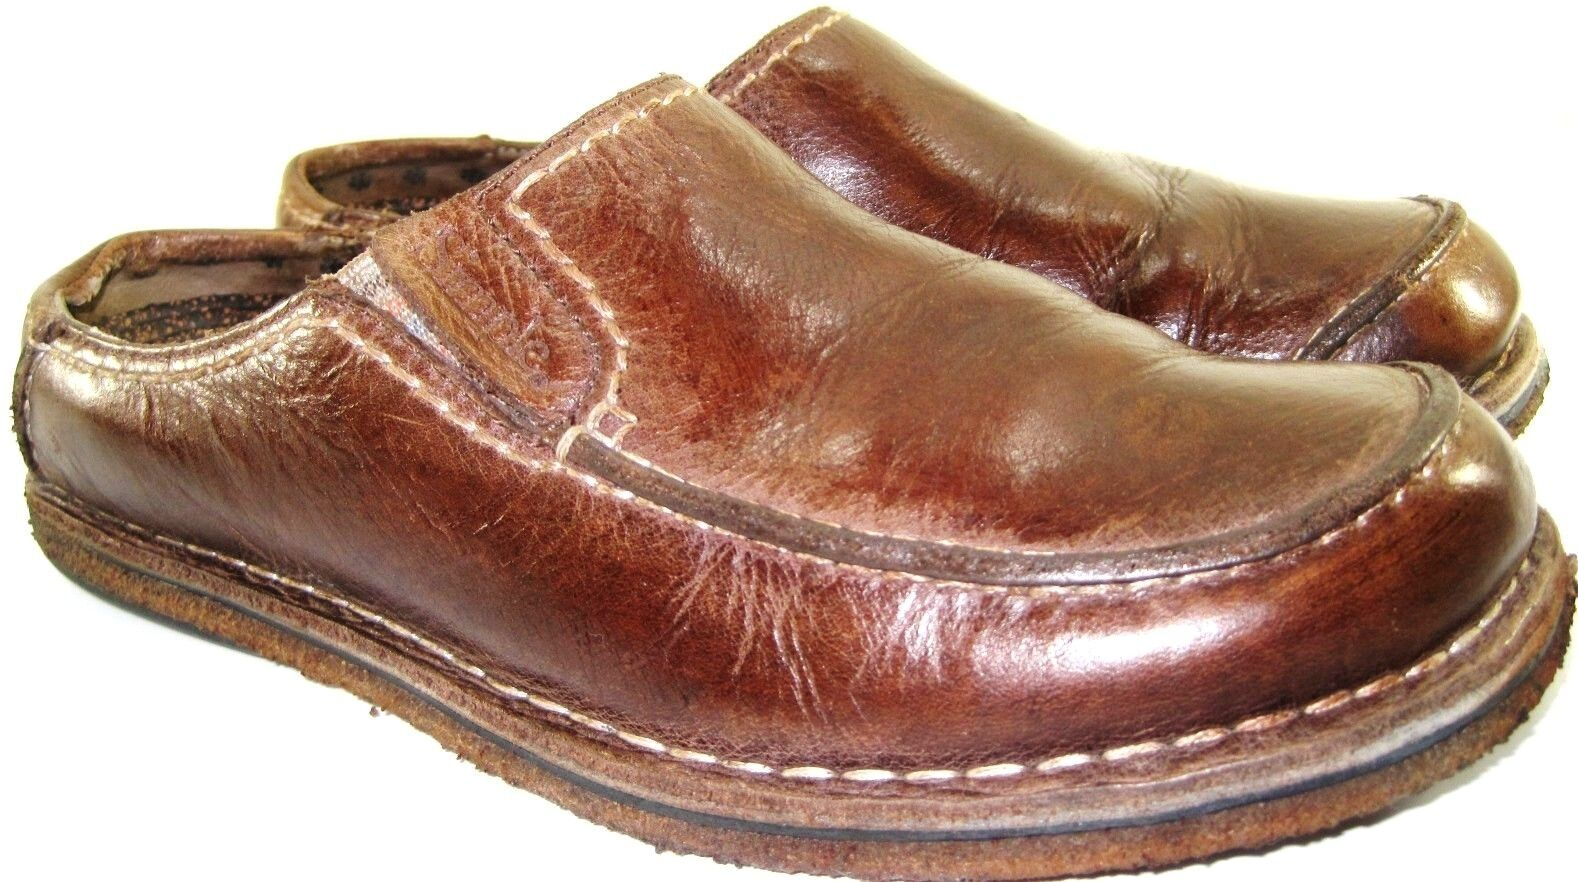 Simple Uomo Mule Shoes Size 8.5 Euro 39.5 Brown Style 69136 Rubber Cushion Insole